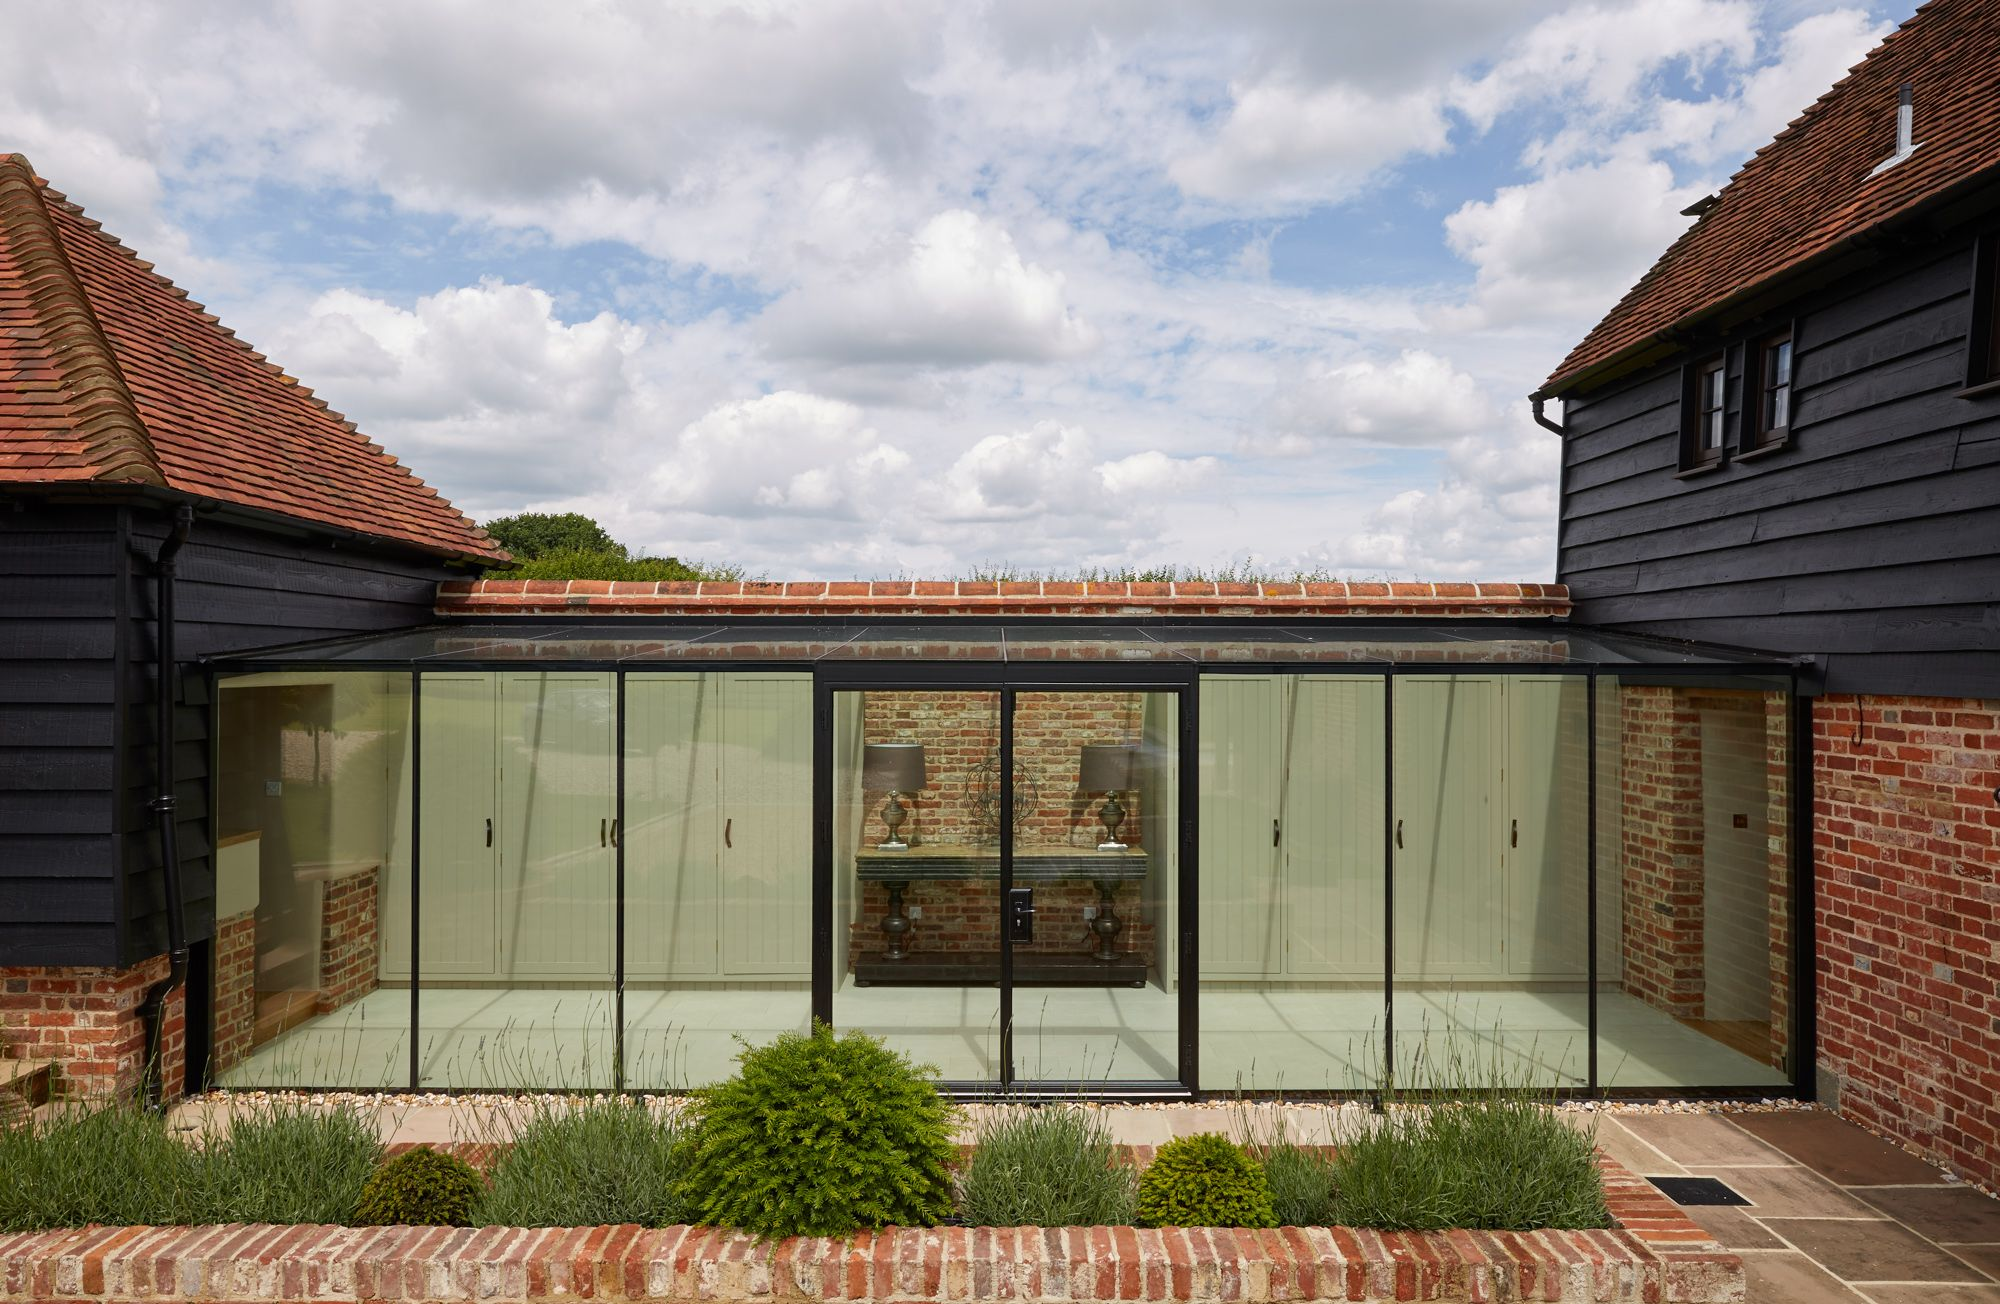 Frameless Structurally Glazed Walkway Link Between